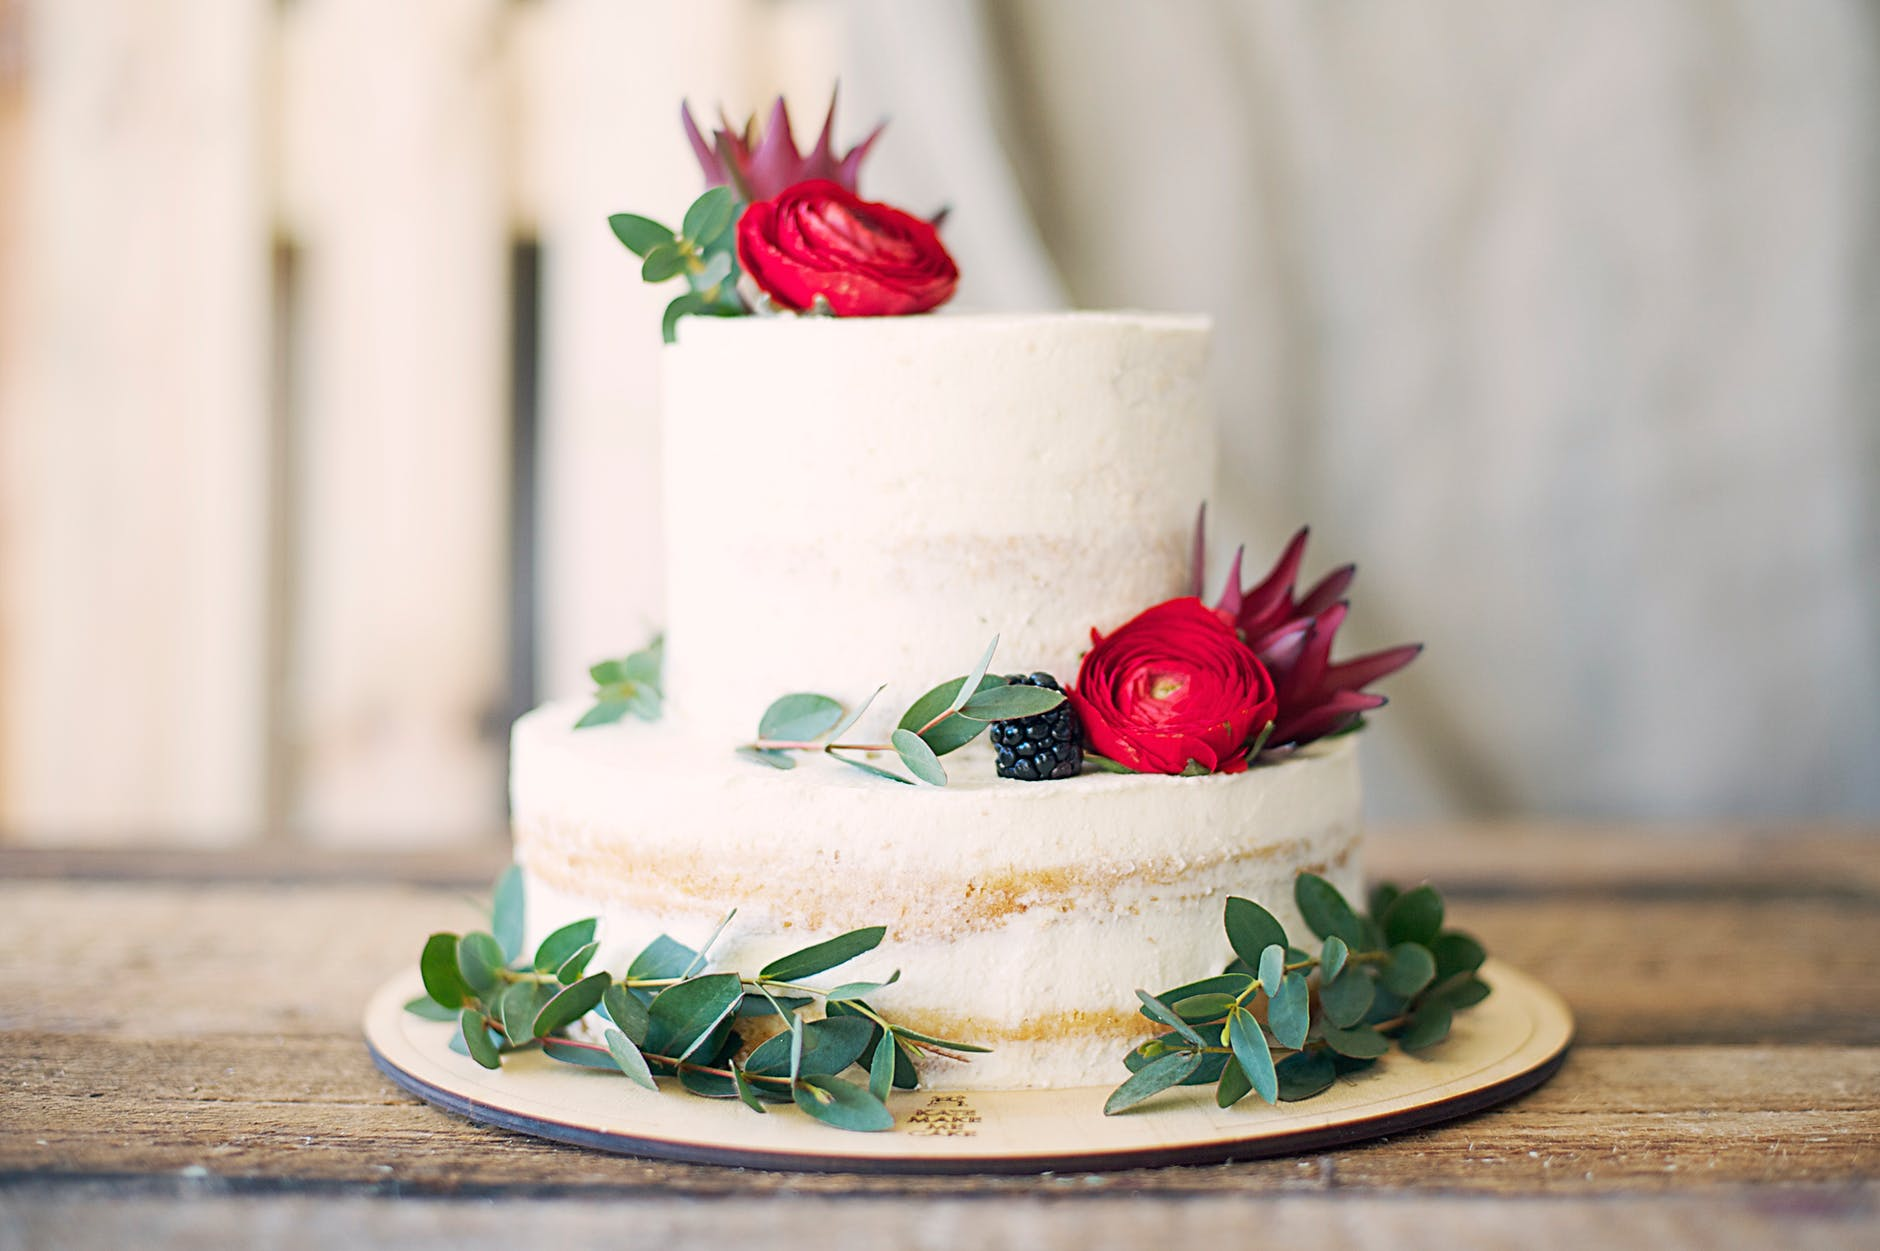 Five cakes ideas to consider for the birthday celebration